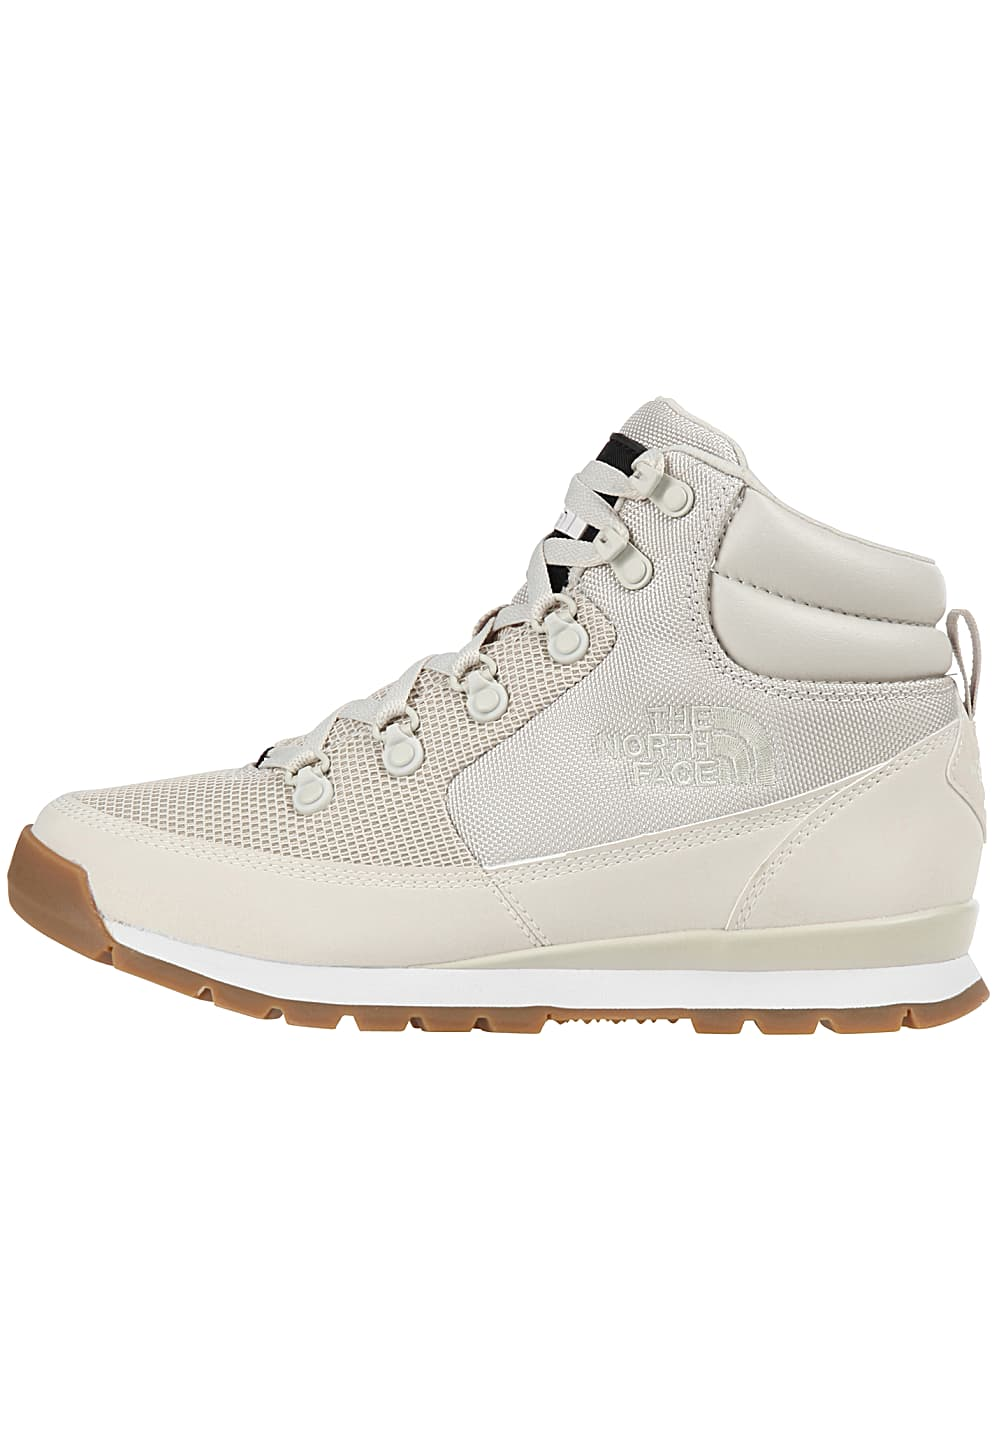 best service 9be13 160df THE NORTH FACE B-To-B Redx Mesh - Trekkingschuhe für Damen - Beige